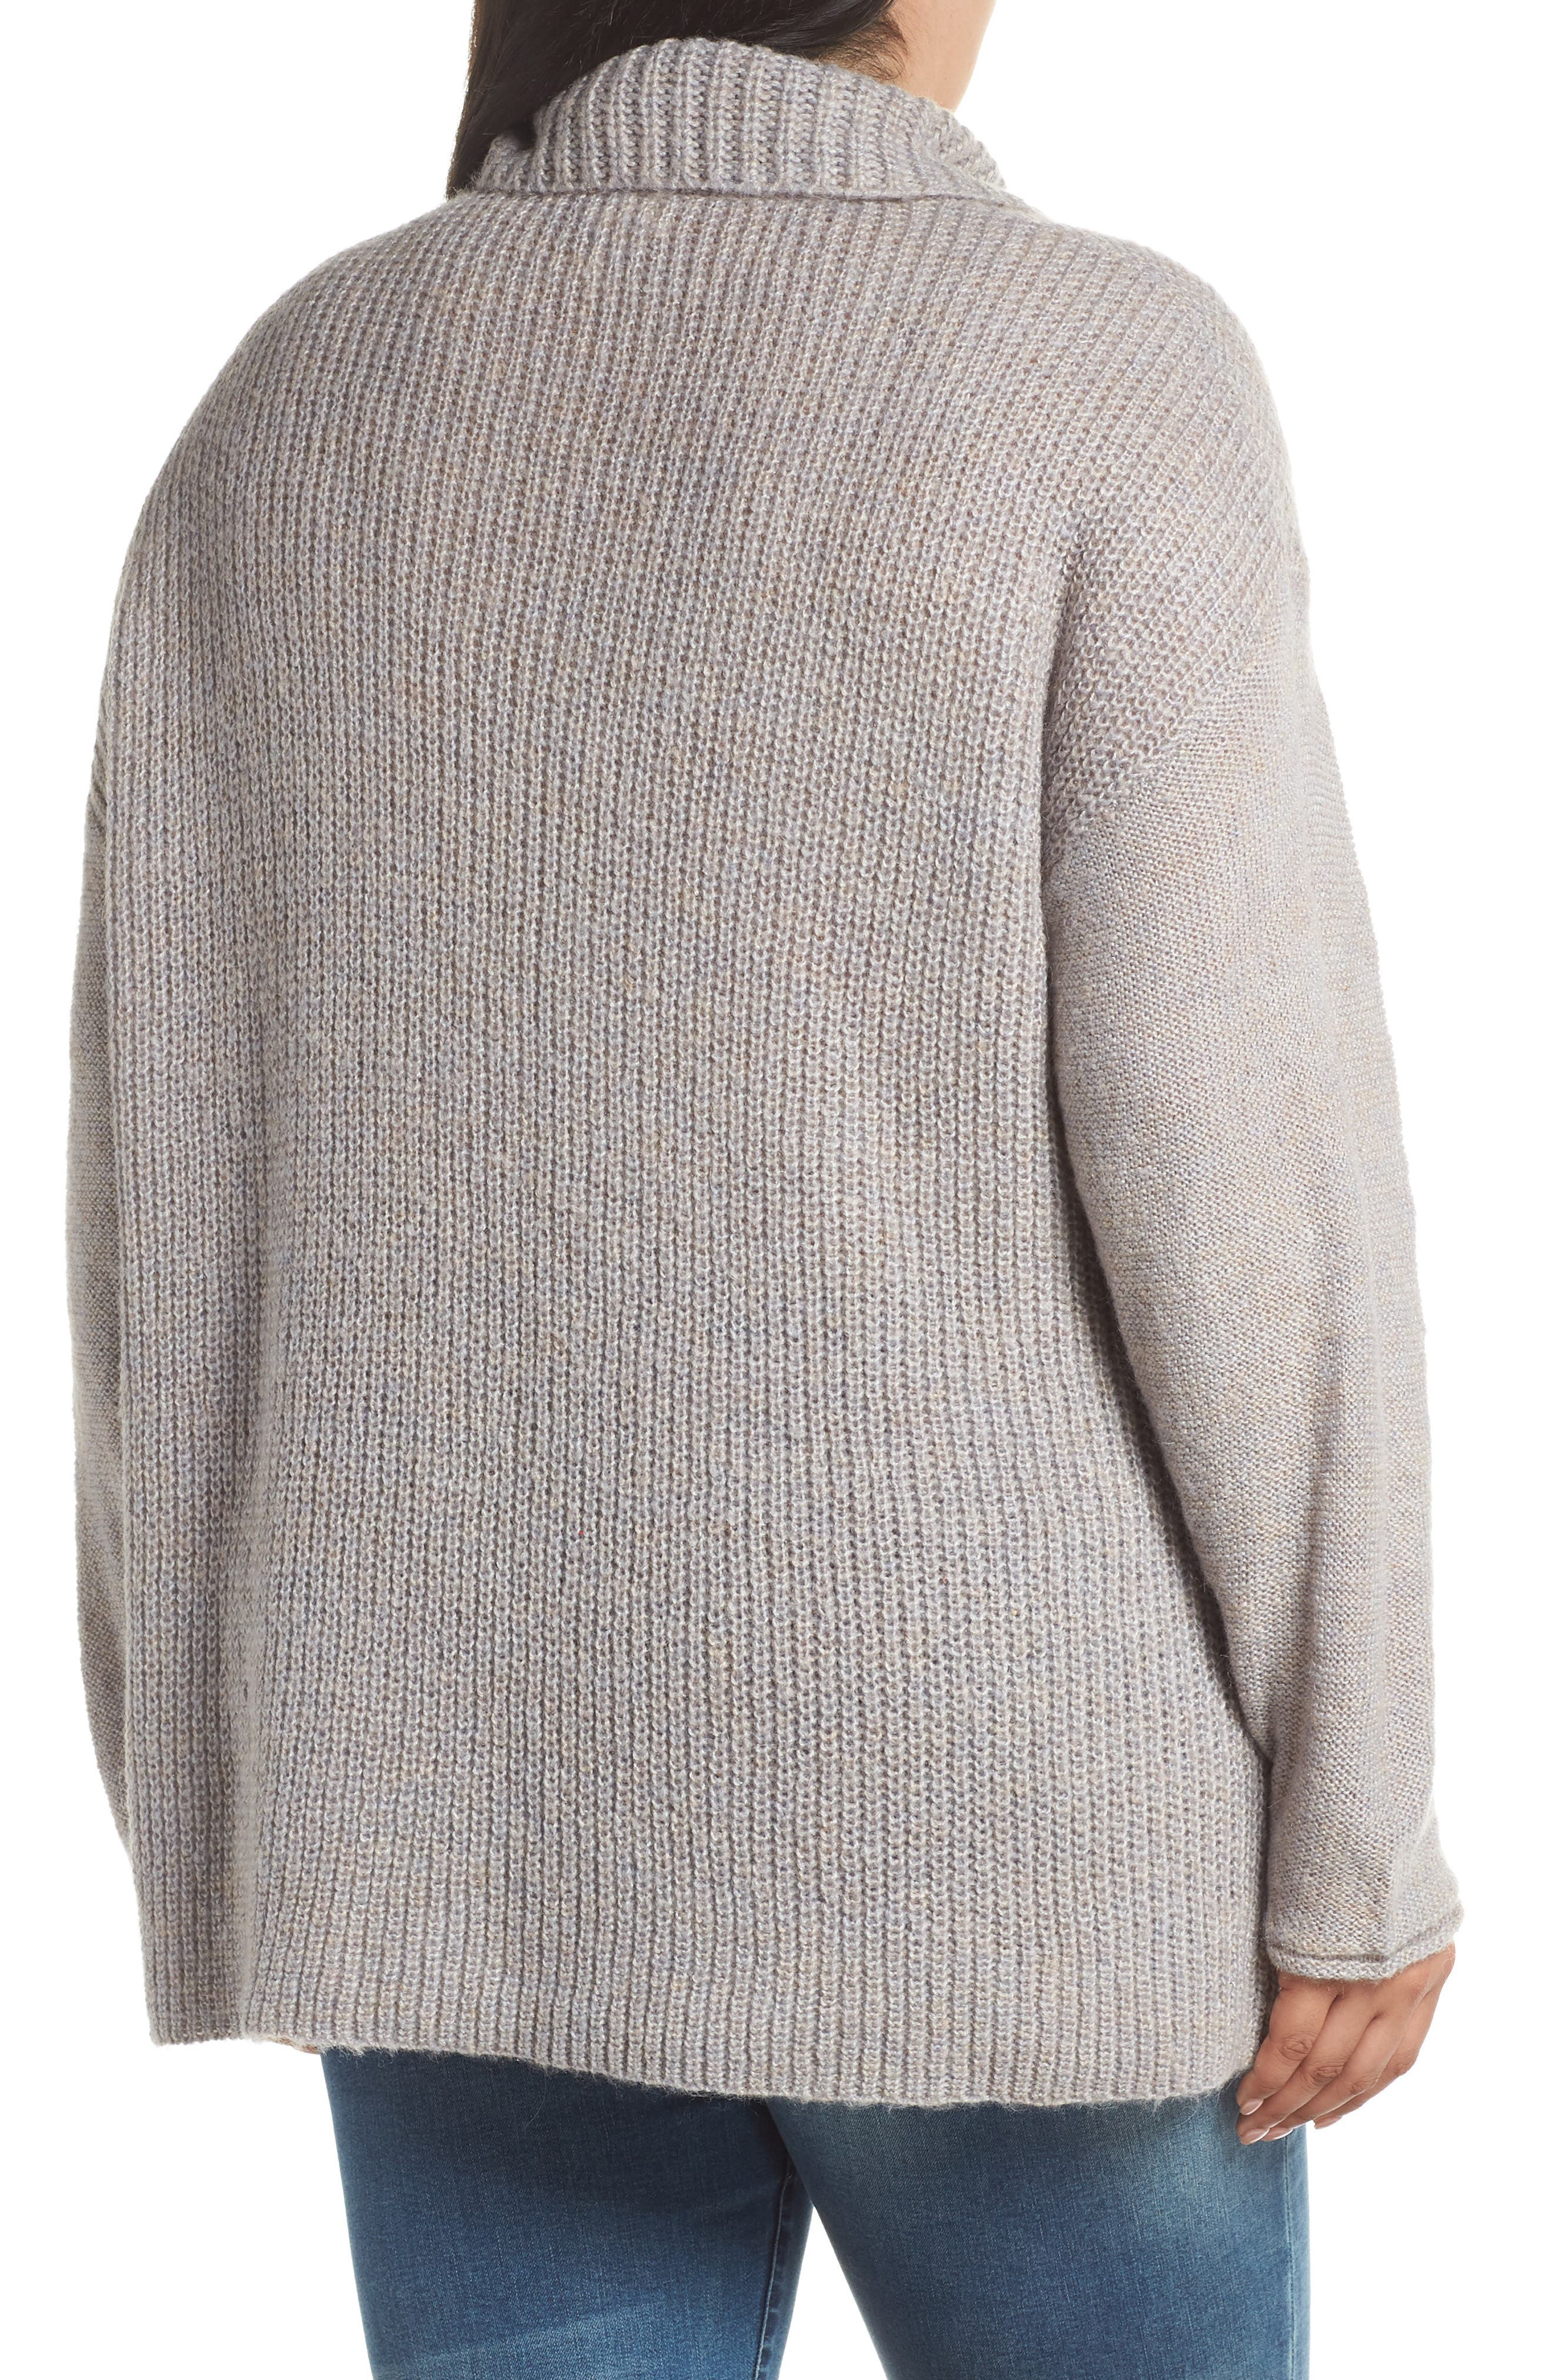 Mix Stitch Wool Blend Funnel Neck Sweater,                             Alternate thumbnail 2, color,                             GREY HEATHER